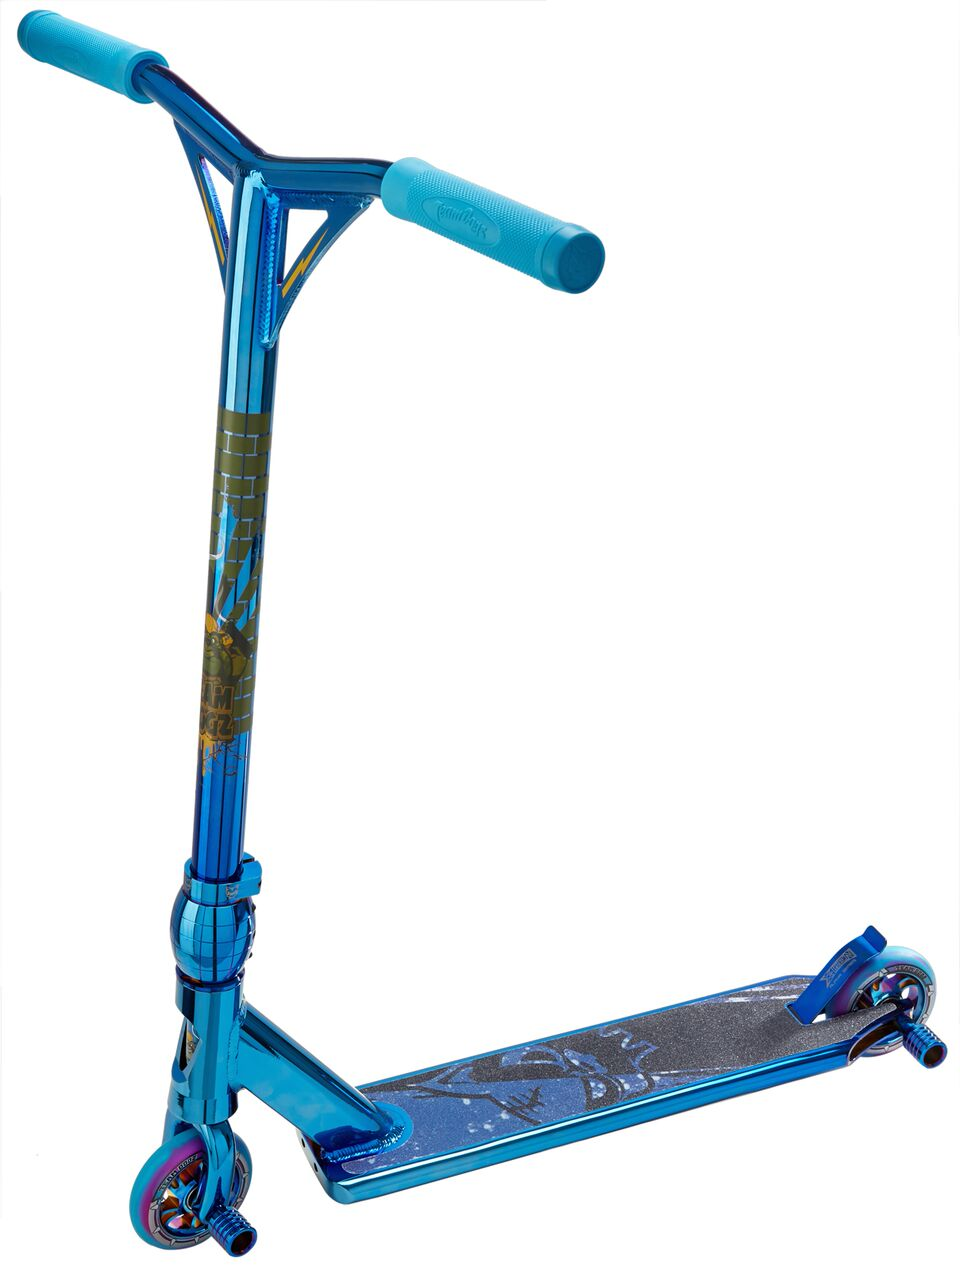 team dogz pro 4 blue chromo scooter. Black Bedroom Furniture Sets. Home Design Ideas